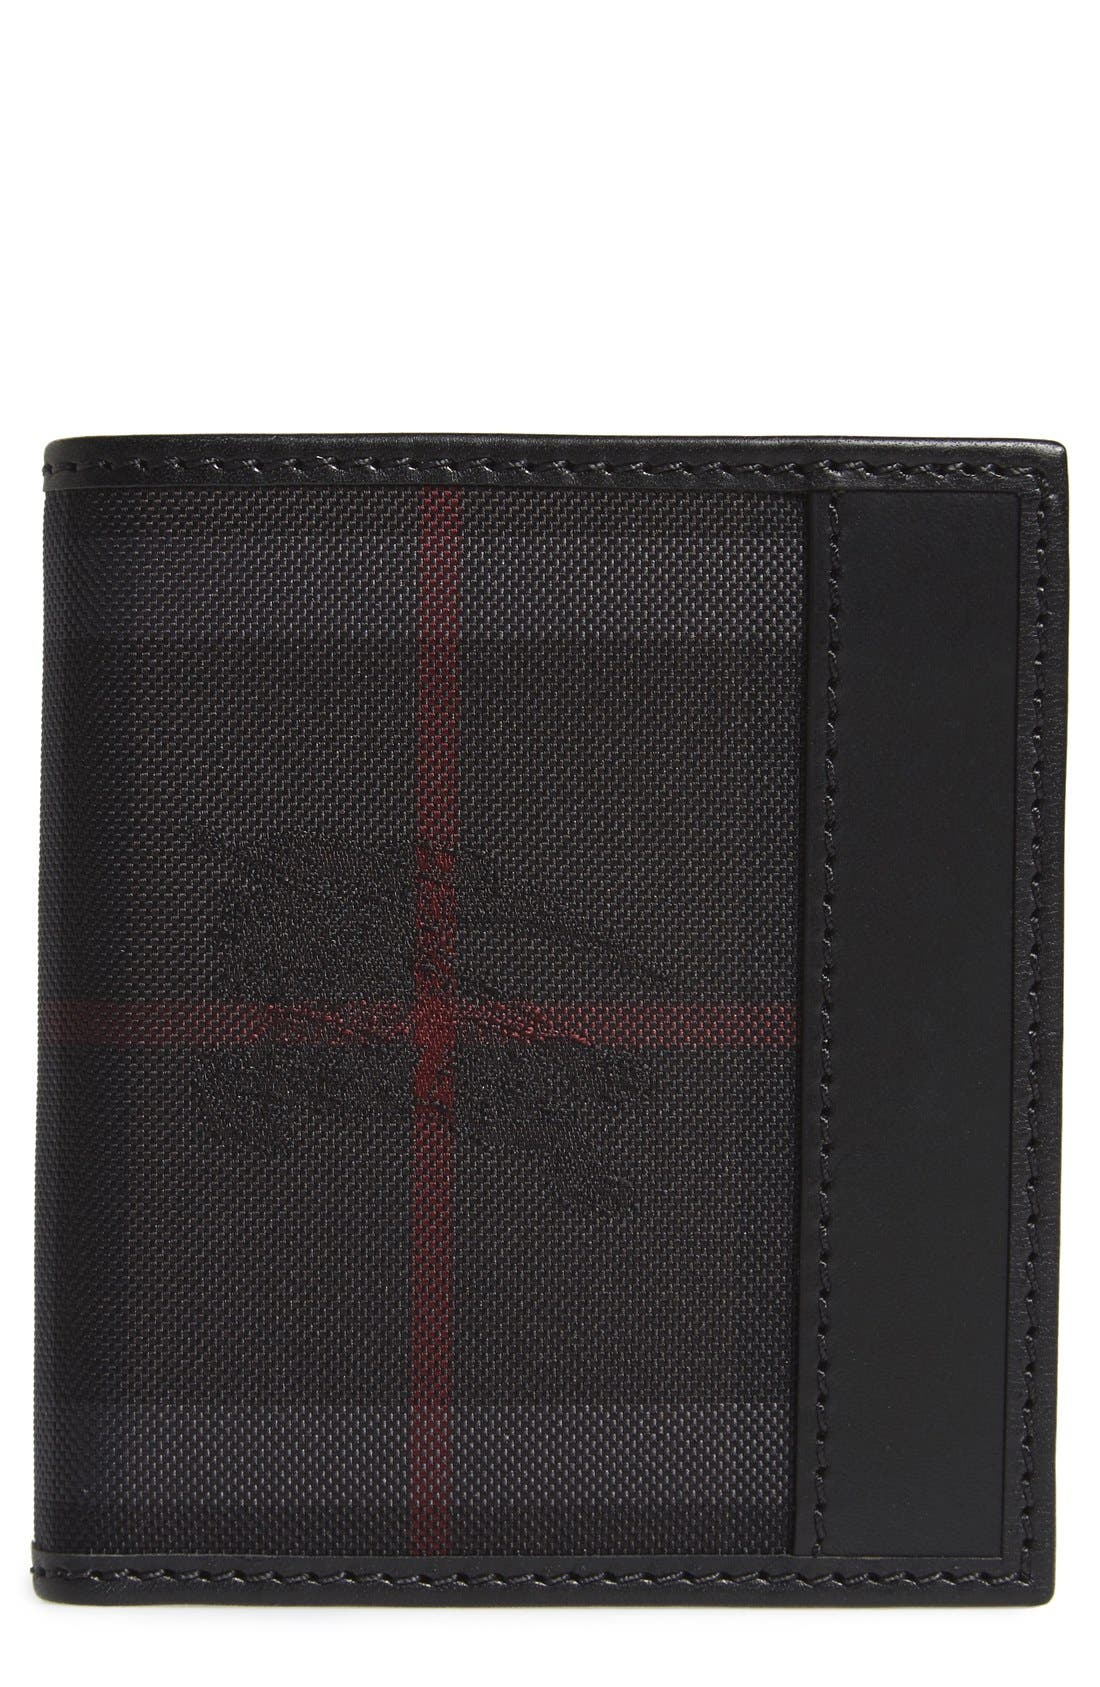 BURBERRY Rowan Check Nylon Wallet